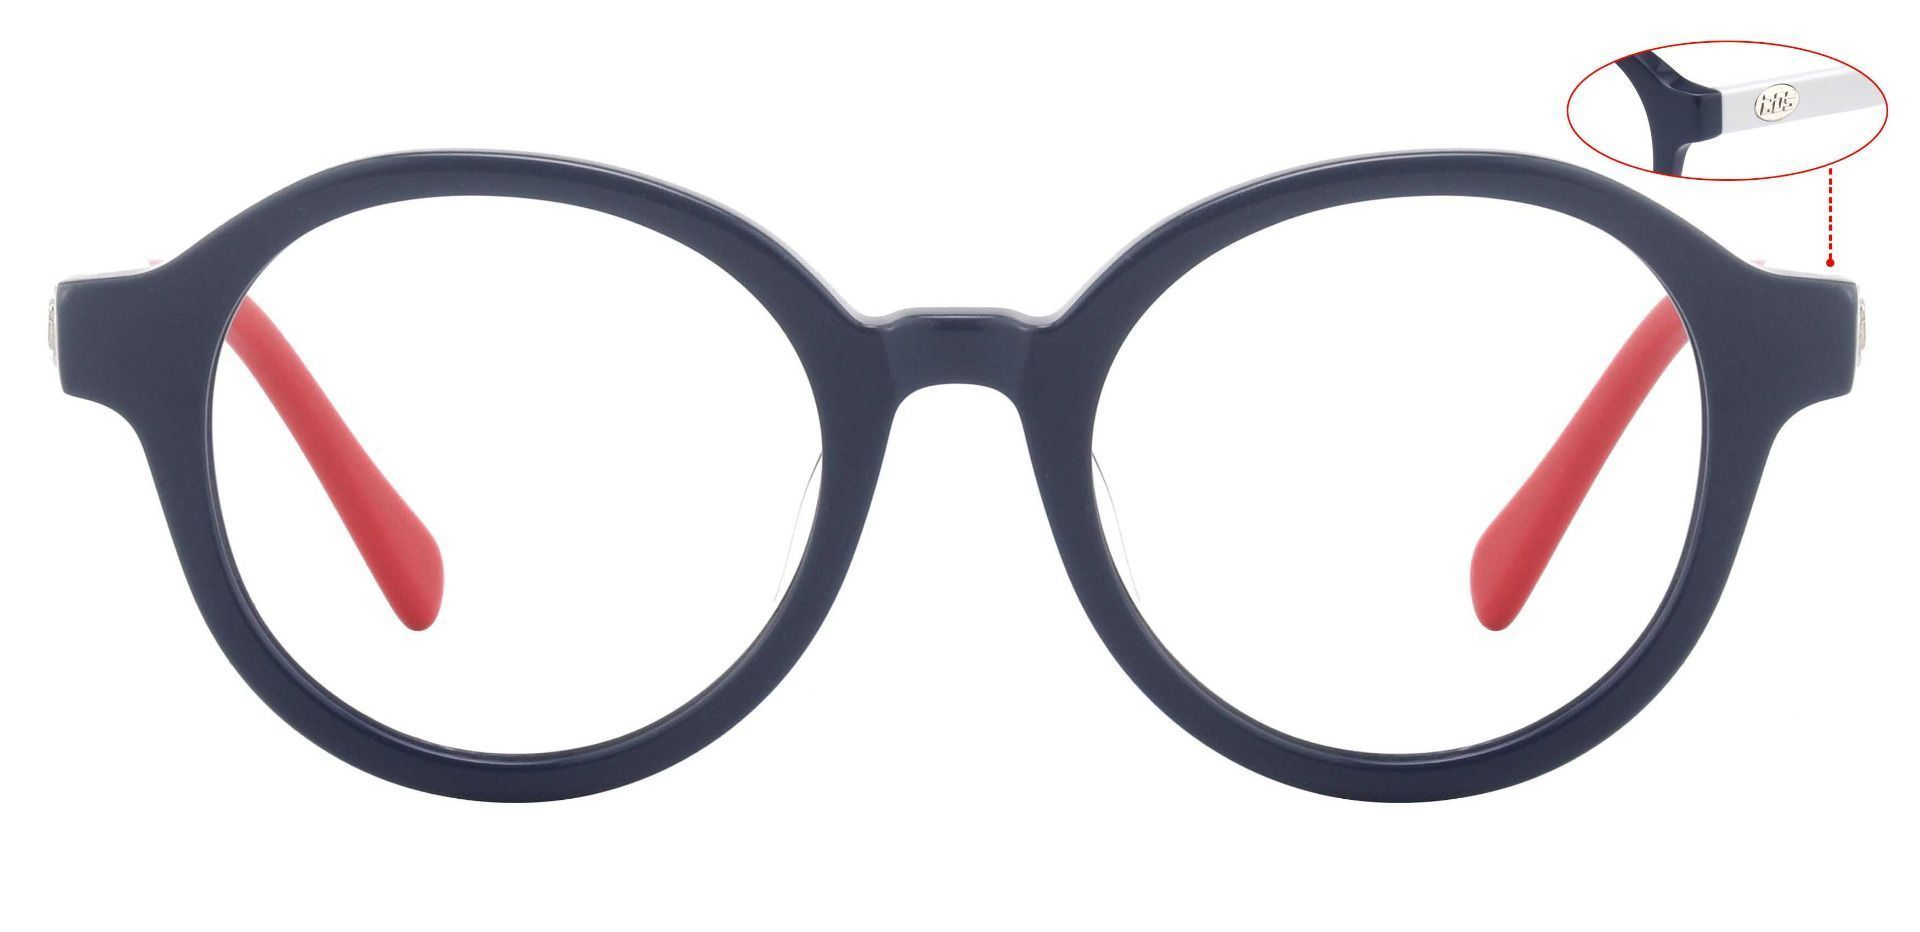 Dudley Round Eyeglasses Frame - The Frame Is Blue And Yellow